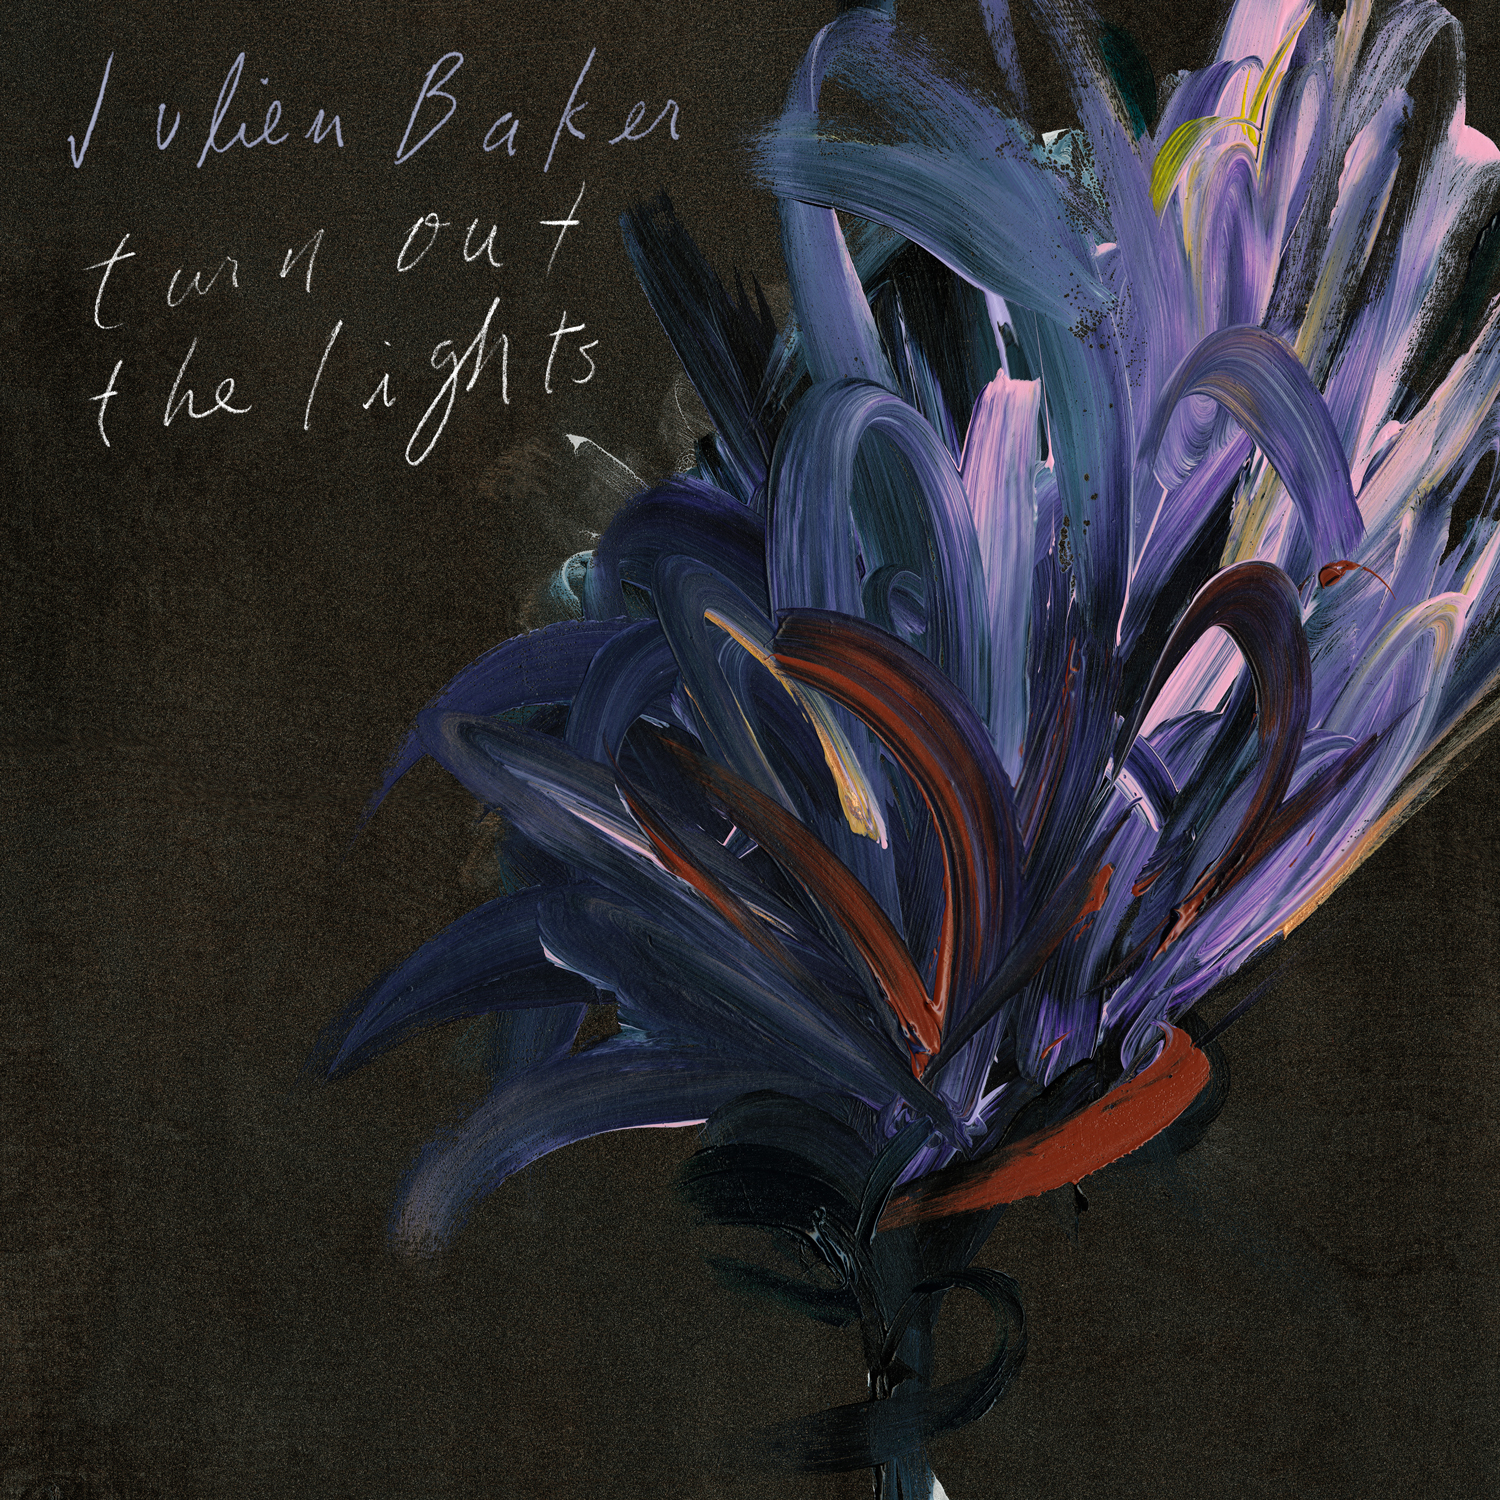 """Turn Out The Lights  Julien Baker   Hot Takes:   """"Powerfully mournful. Drowning in defiant heartache. Julien Baker's  Turn Out The Lights  is a journey into a dark night of the soul that's worth maybe not making it back from."""" - Kevin  """"Morose, yet brilliant, the most intriguing notion about Julien Baker's latest album (and career) is to contemplate when content will outweigh context and we truly get to see the full scope of her musical ability.- Marcus K. Dowling   LINKS   Official Site   Facebook   Twitter   Instagram    LISTEN ON   Spotify   Apple Music"""